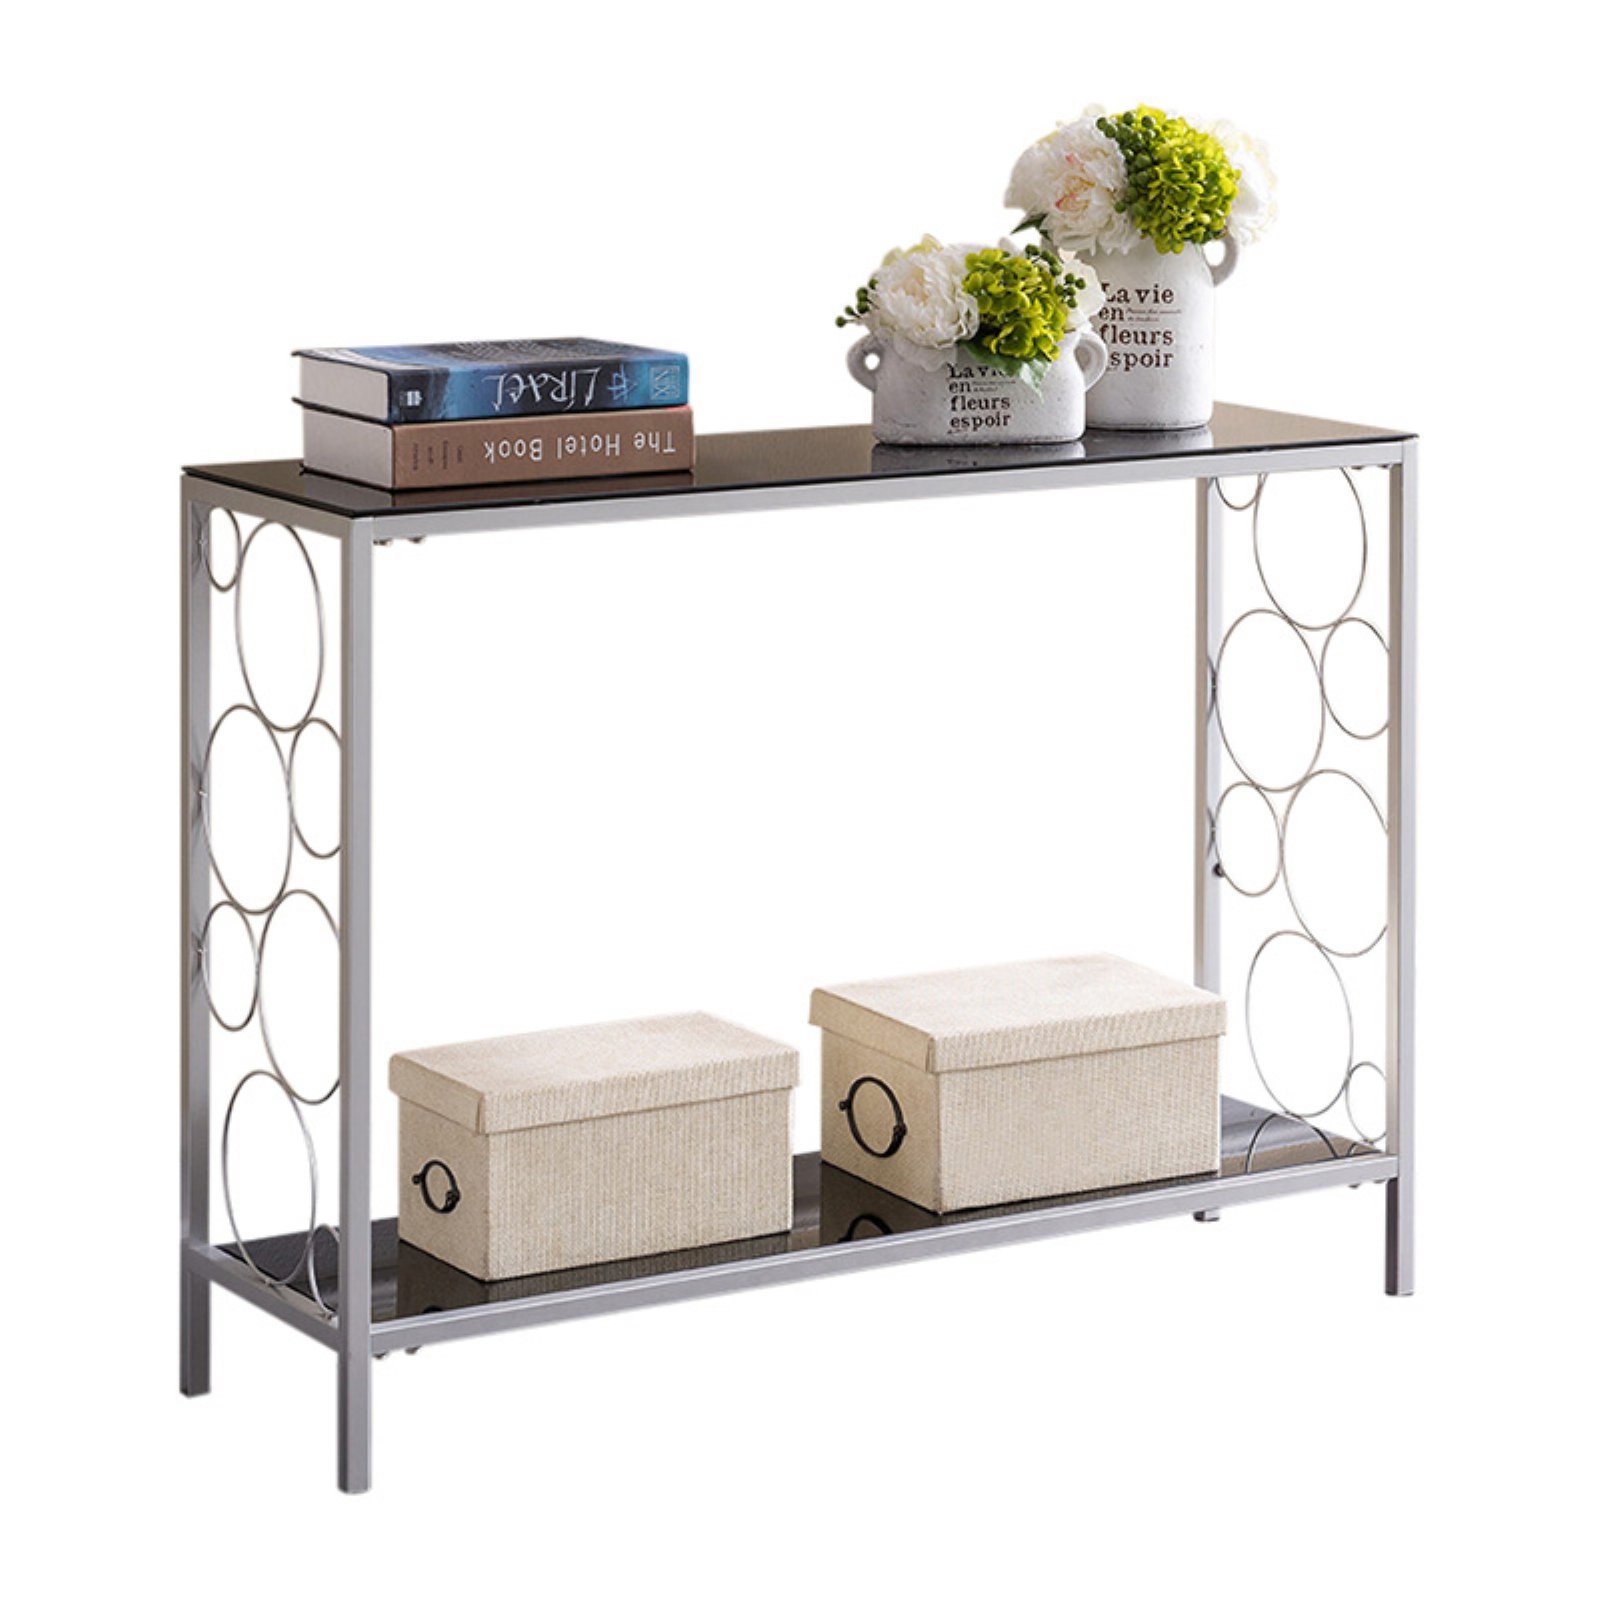 K&B Furniture Spellbound Console Table with 1 Shelf